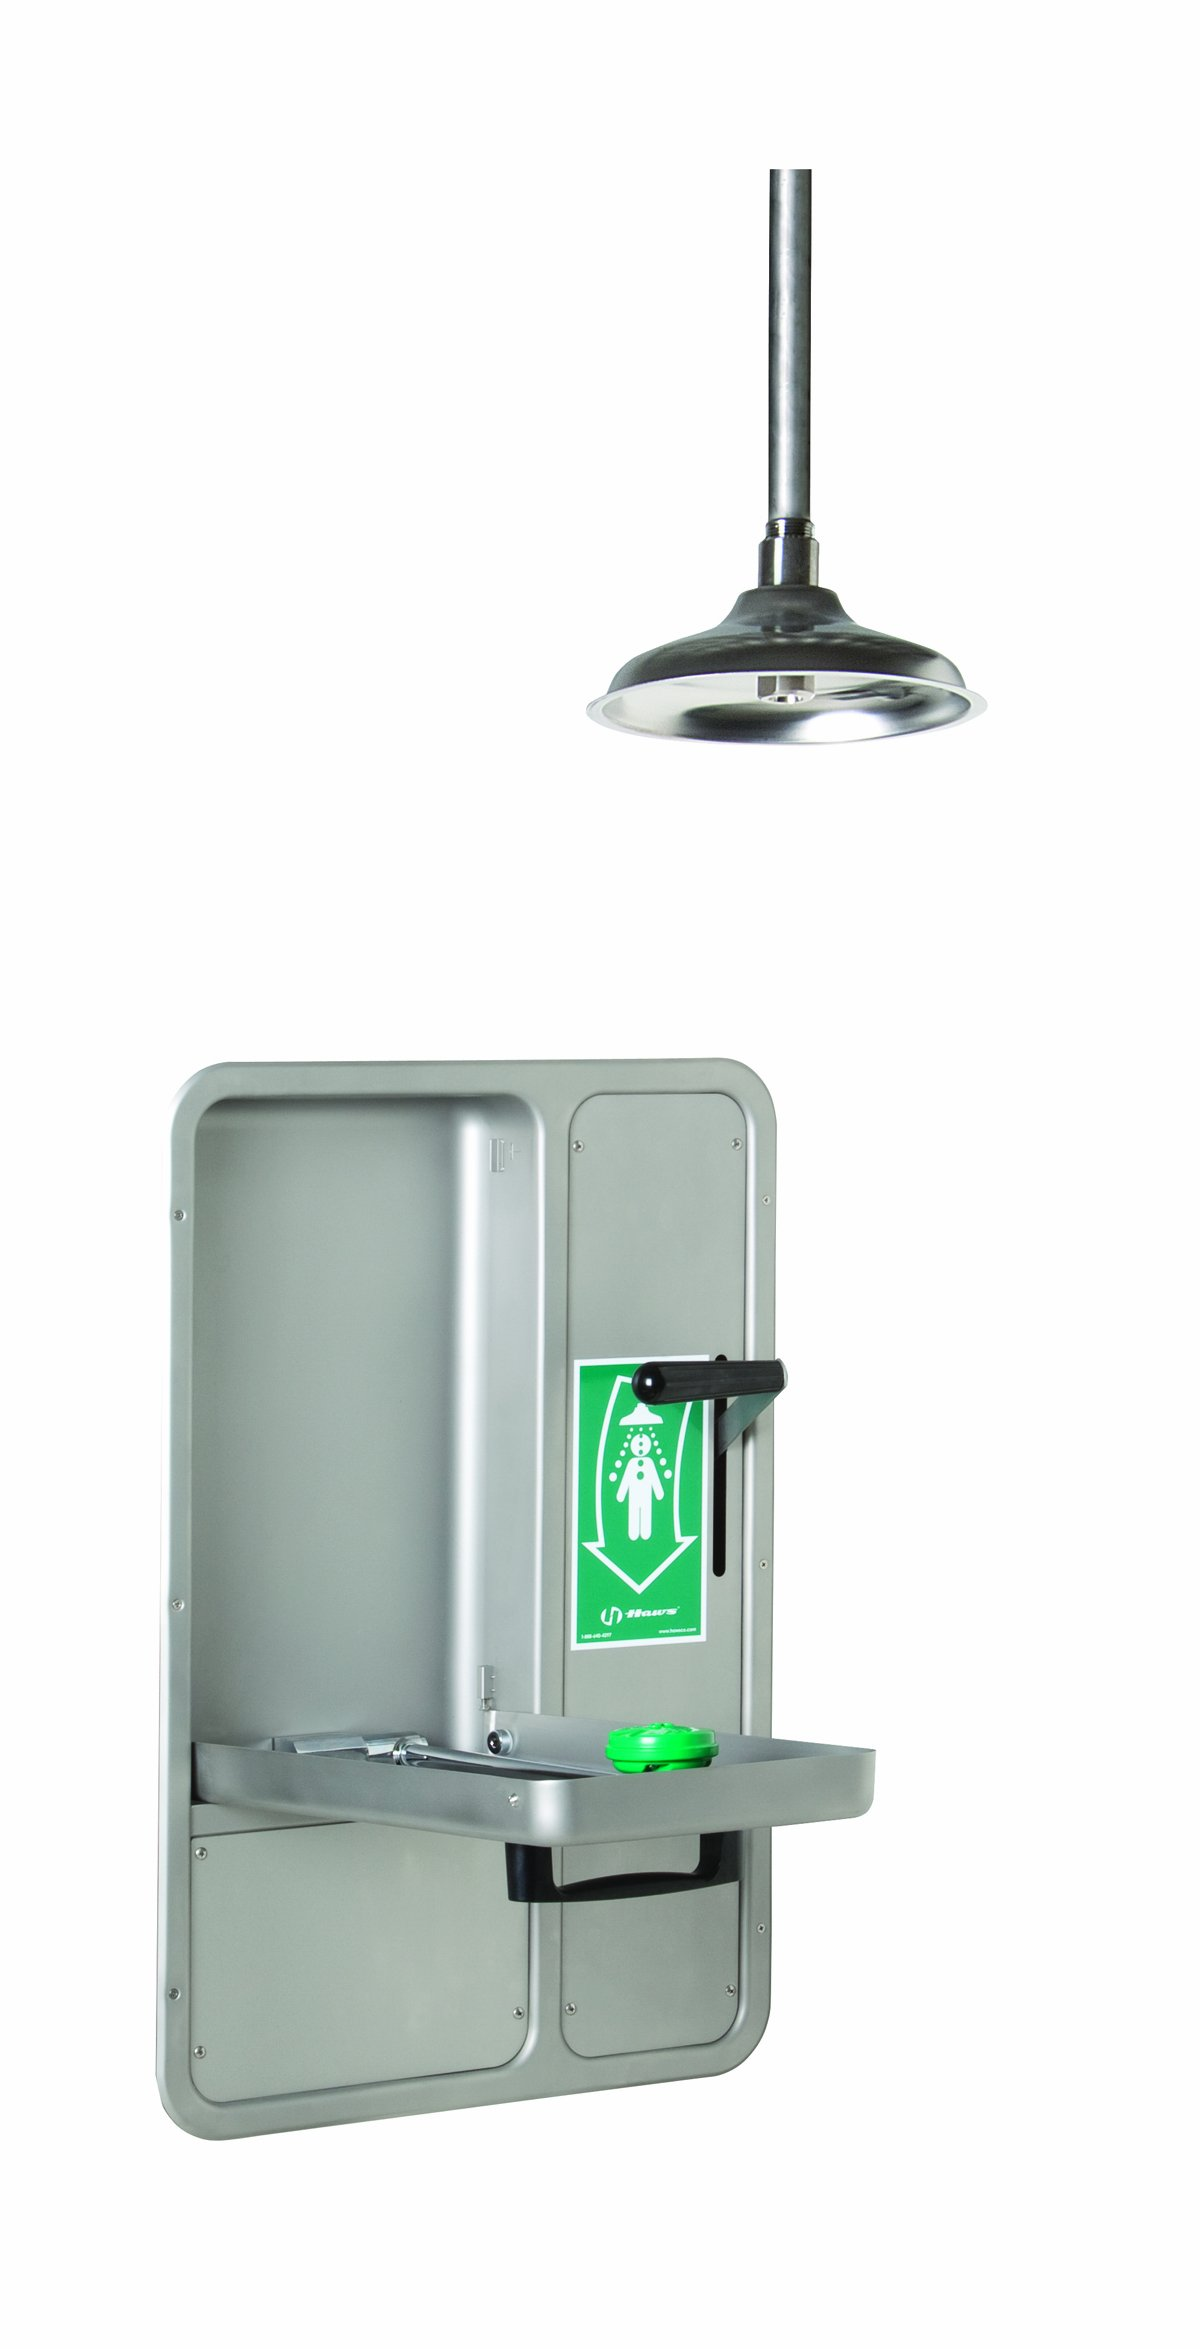 Haws 8356WCC Barrier-Free Wall-Mounted Fully Recessed Combination Shower and Eye/Face Wash